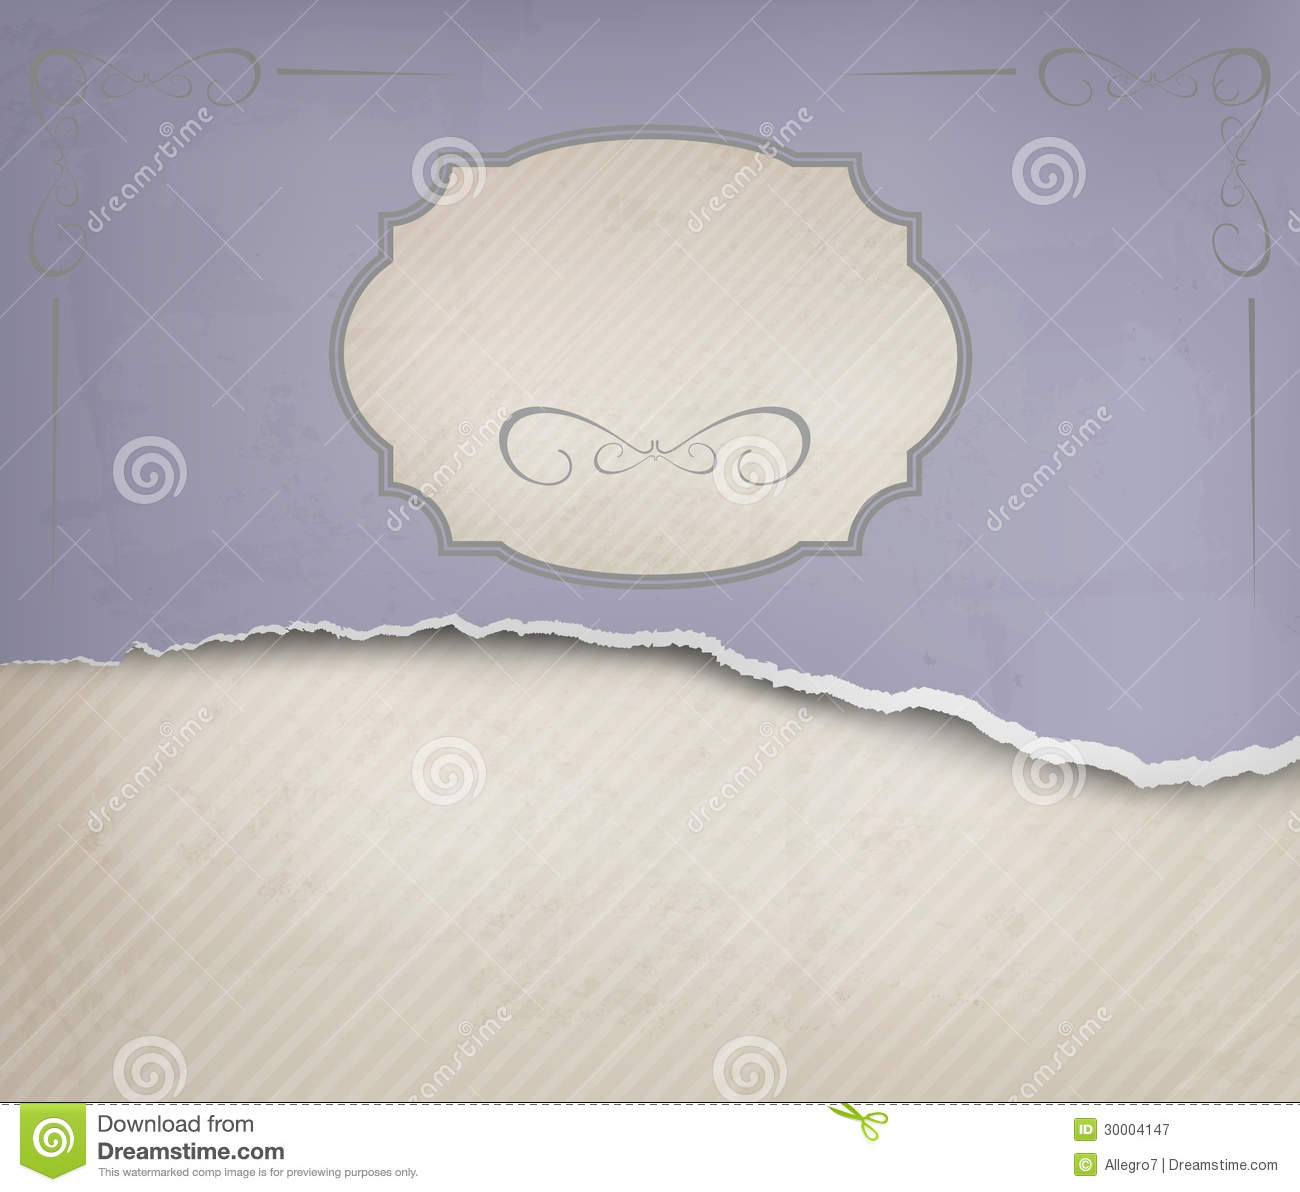 Ripped Old Paper: Vintage Background With Ripped Old Paper. Royalty Free